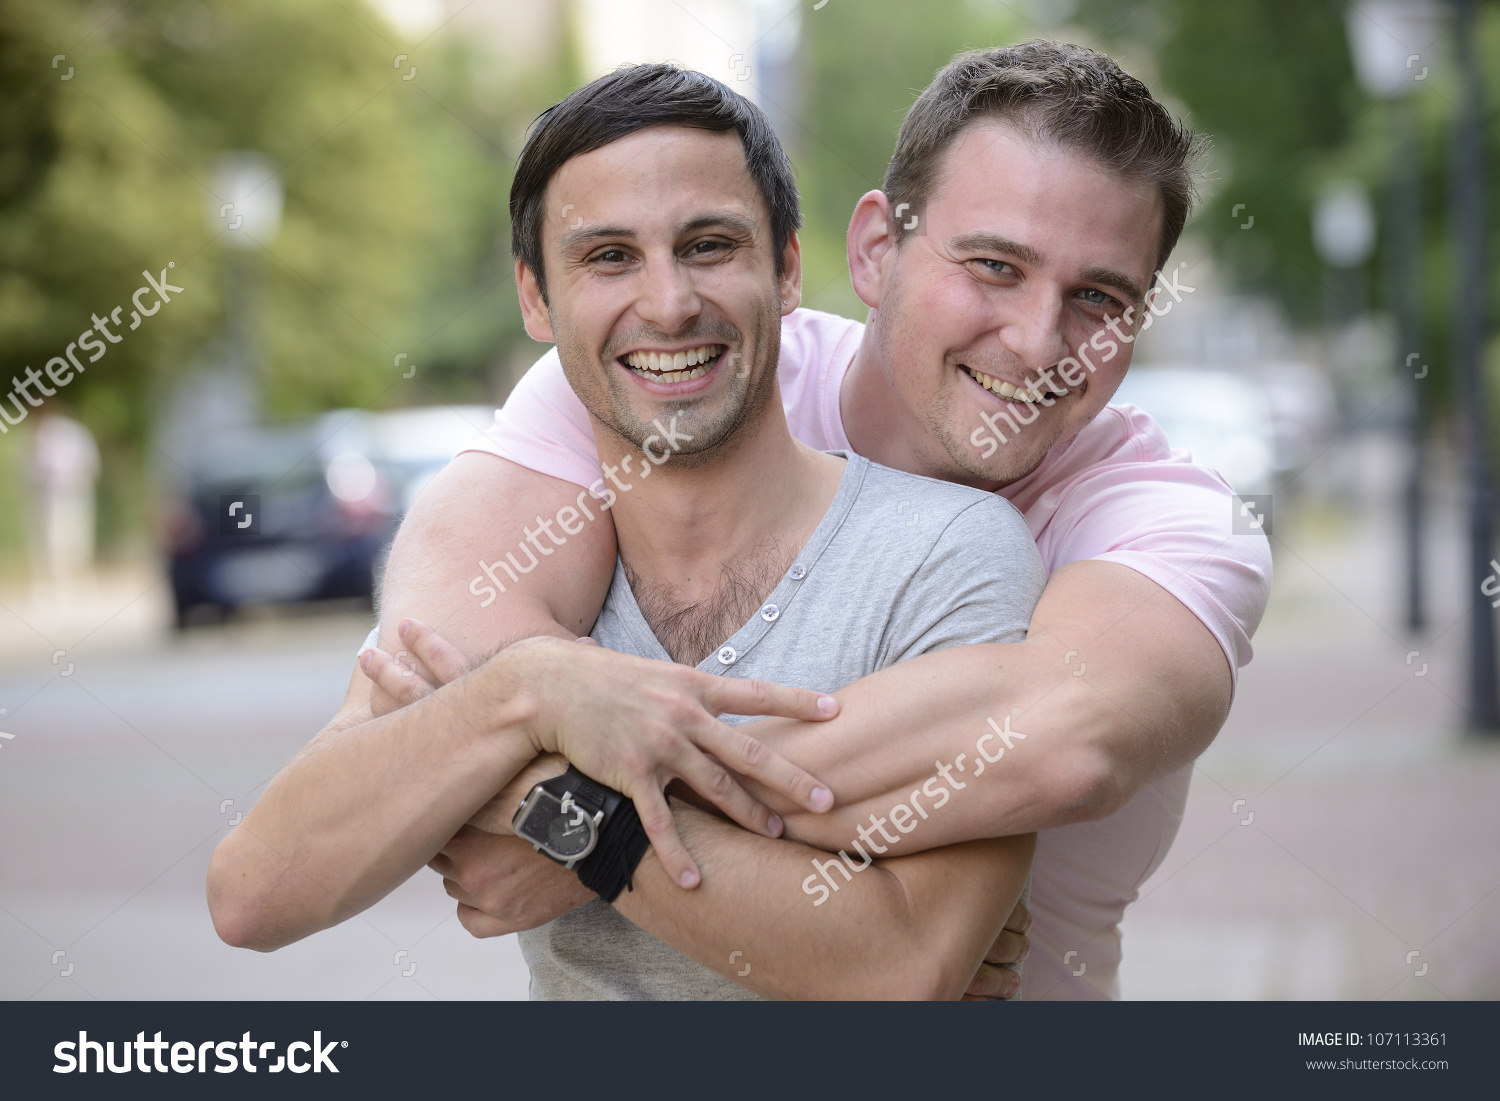 stock-photo-portrait-of-a-happy-gay-couple-outdoors-107113361